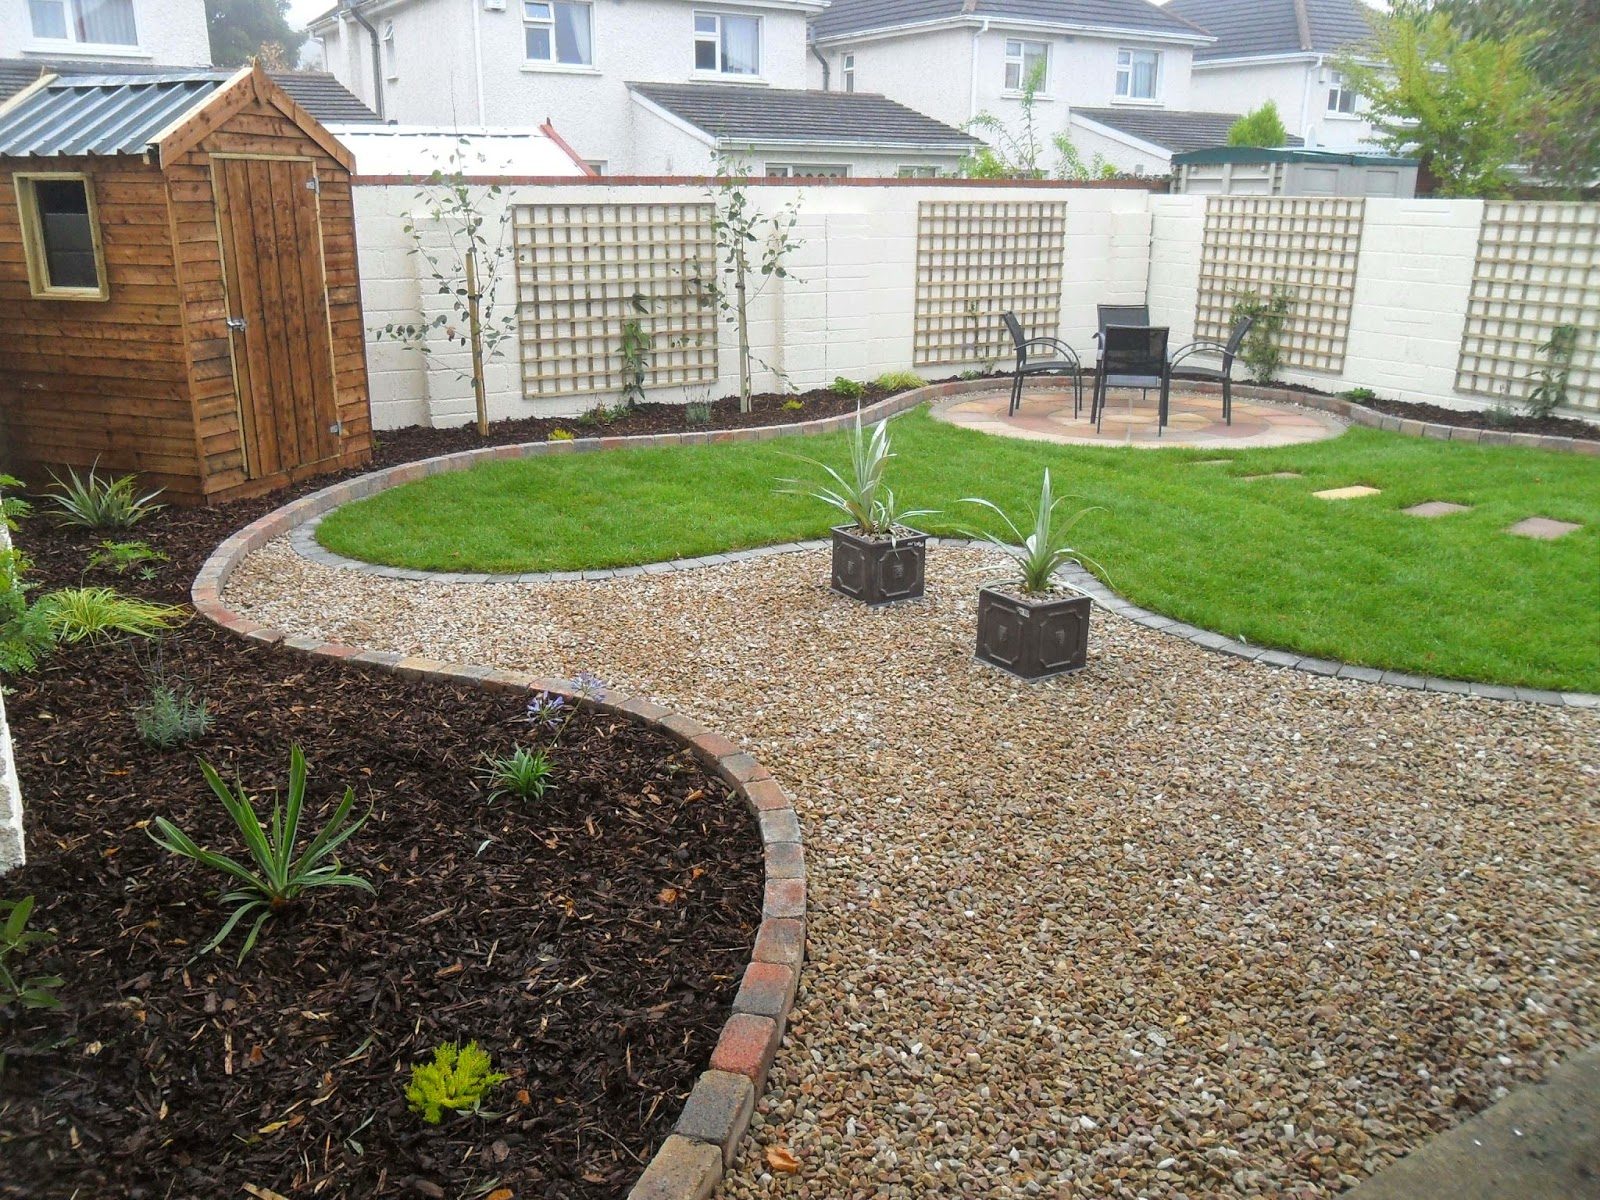 Greenart landscapes garden design construction and for Irish garden designs